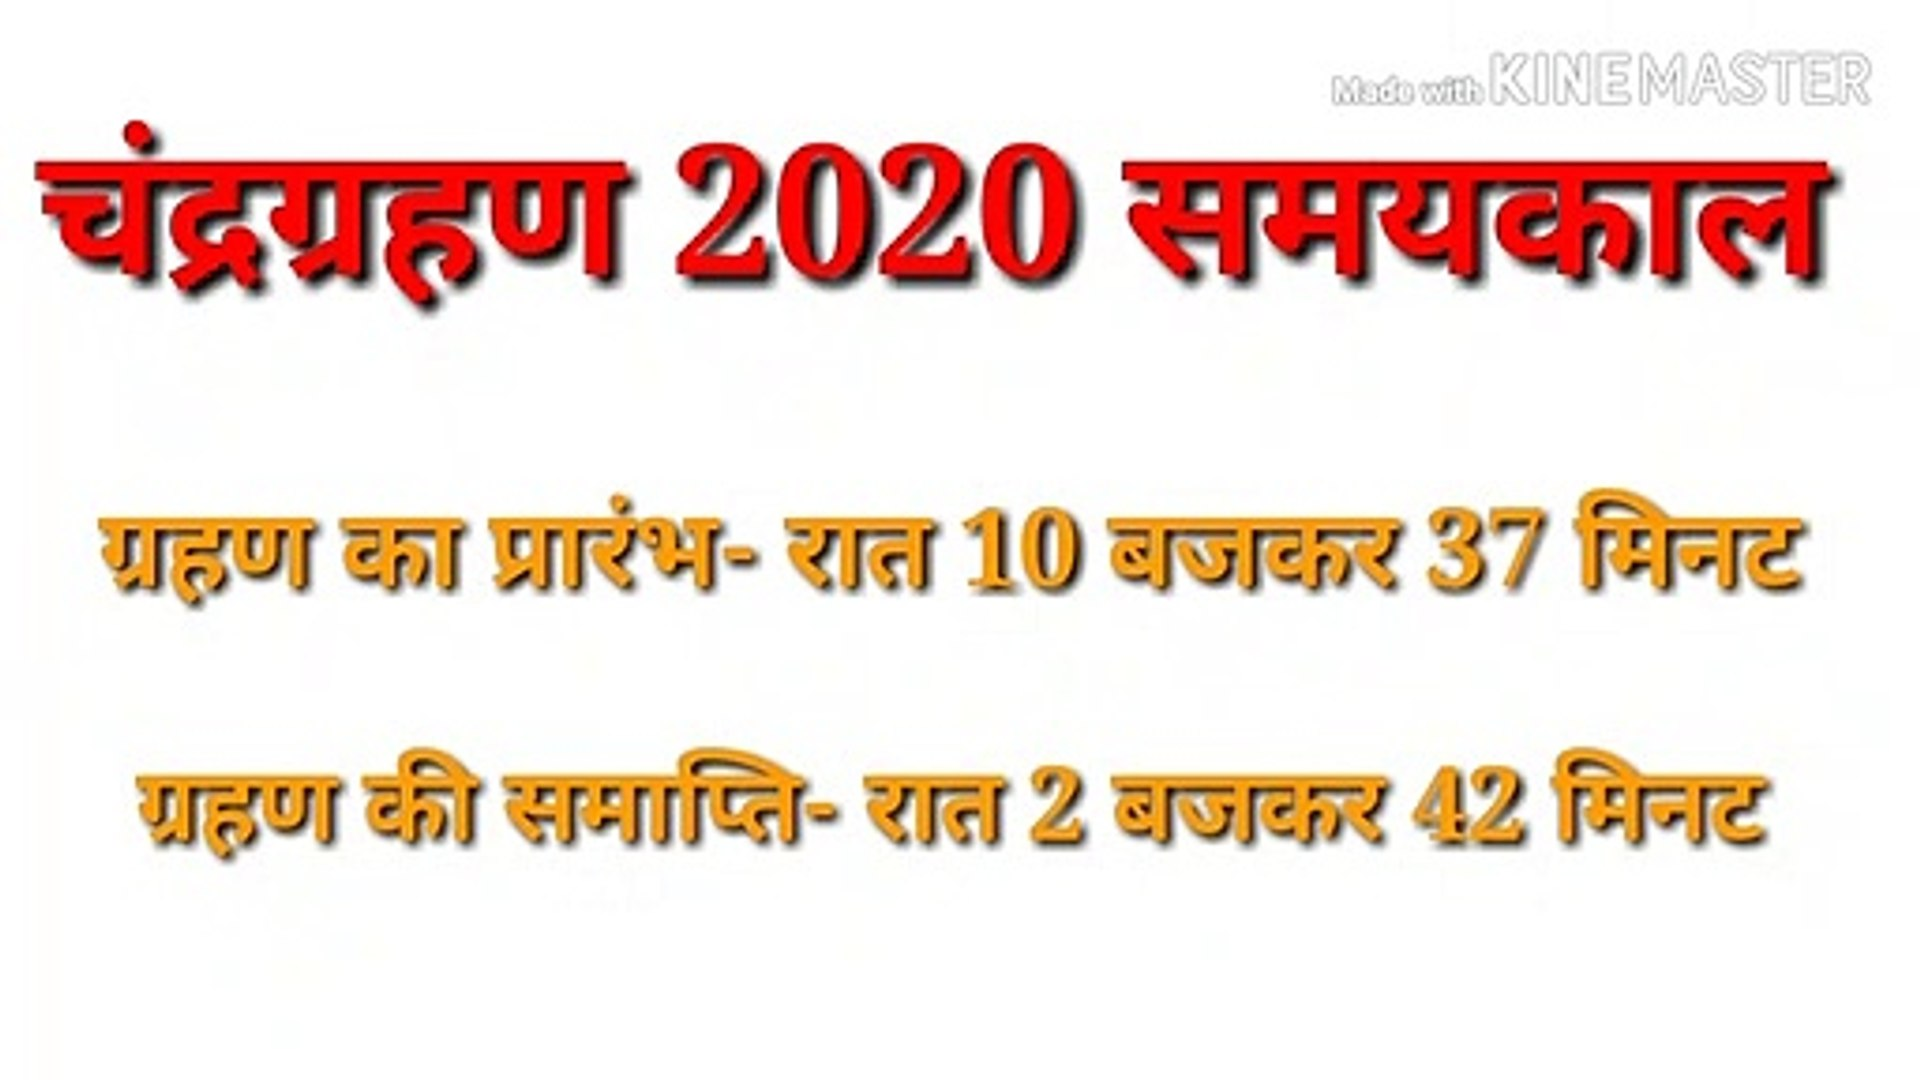 Lunar Eclipse 2020 In India |Chandra Grahan 10 january 2020 | Chandra Grahan 2020 [Eclipse]